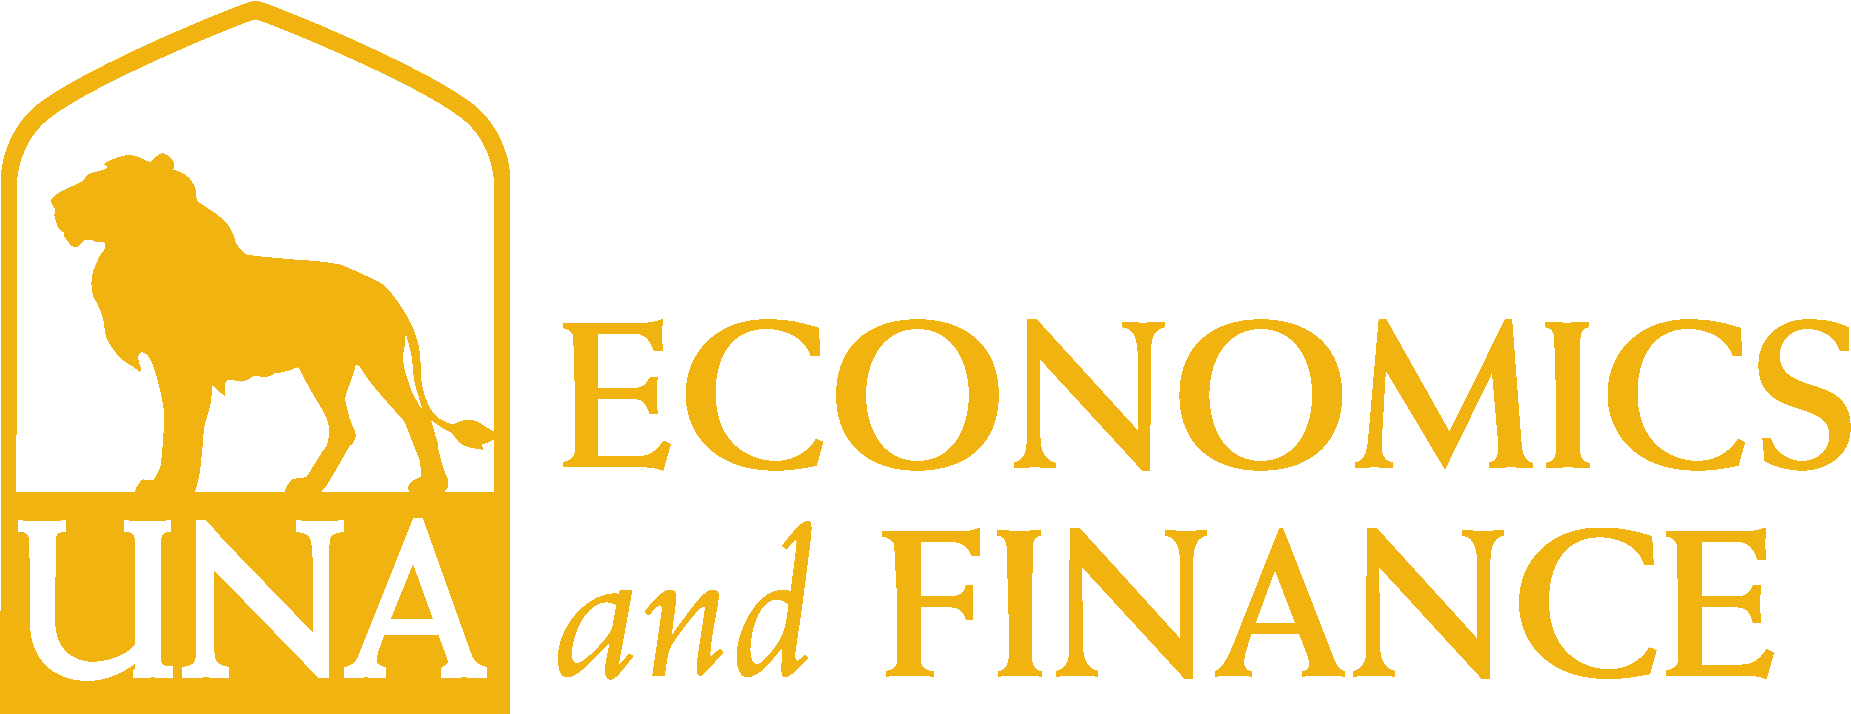 College of Business - Economics and Finance Logo - Gold - Version 3